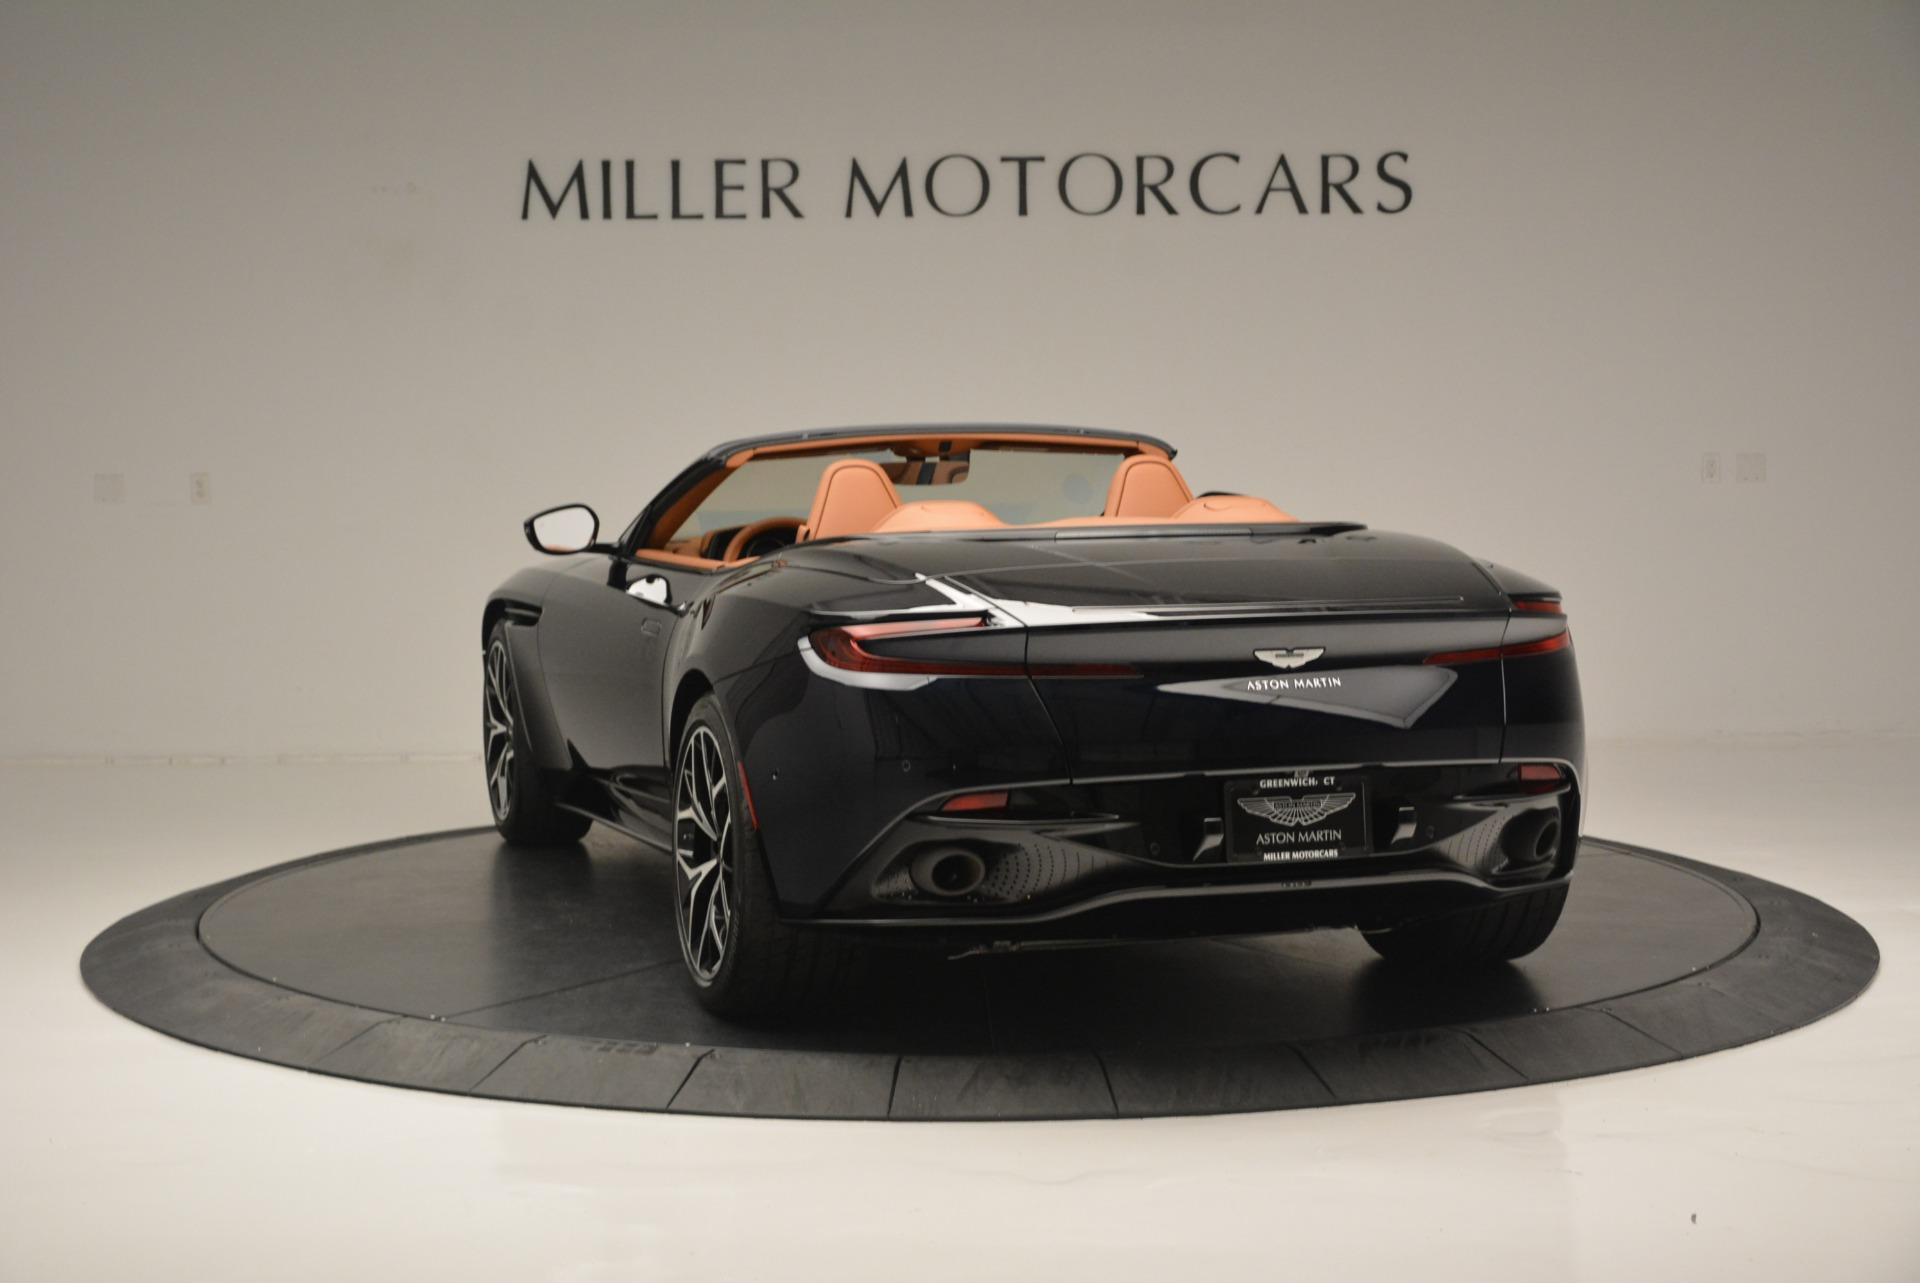 New 2019 Aston Martin DB11 Volante Volante For Sale In Greenwich, CT 2450_p5